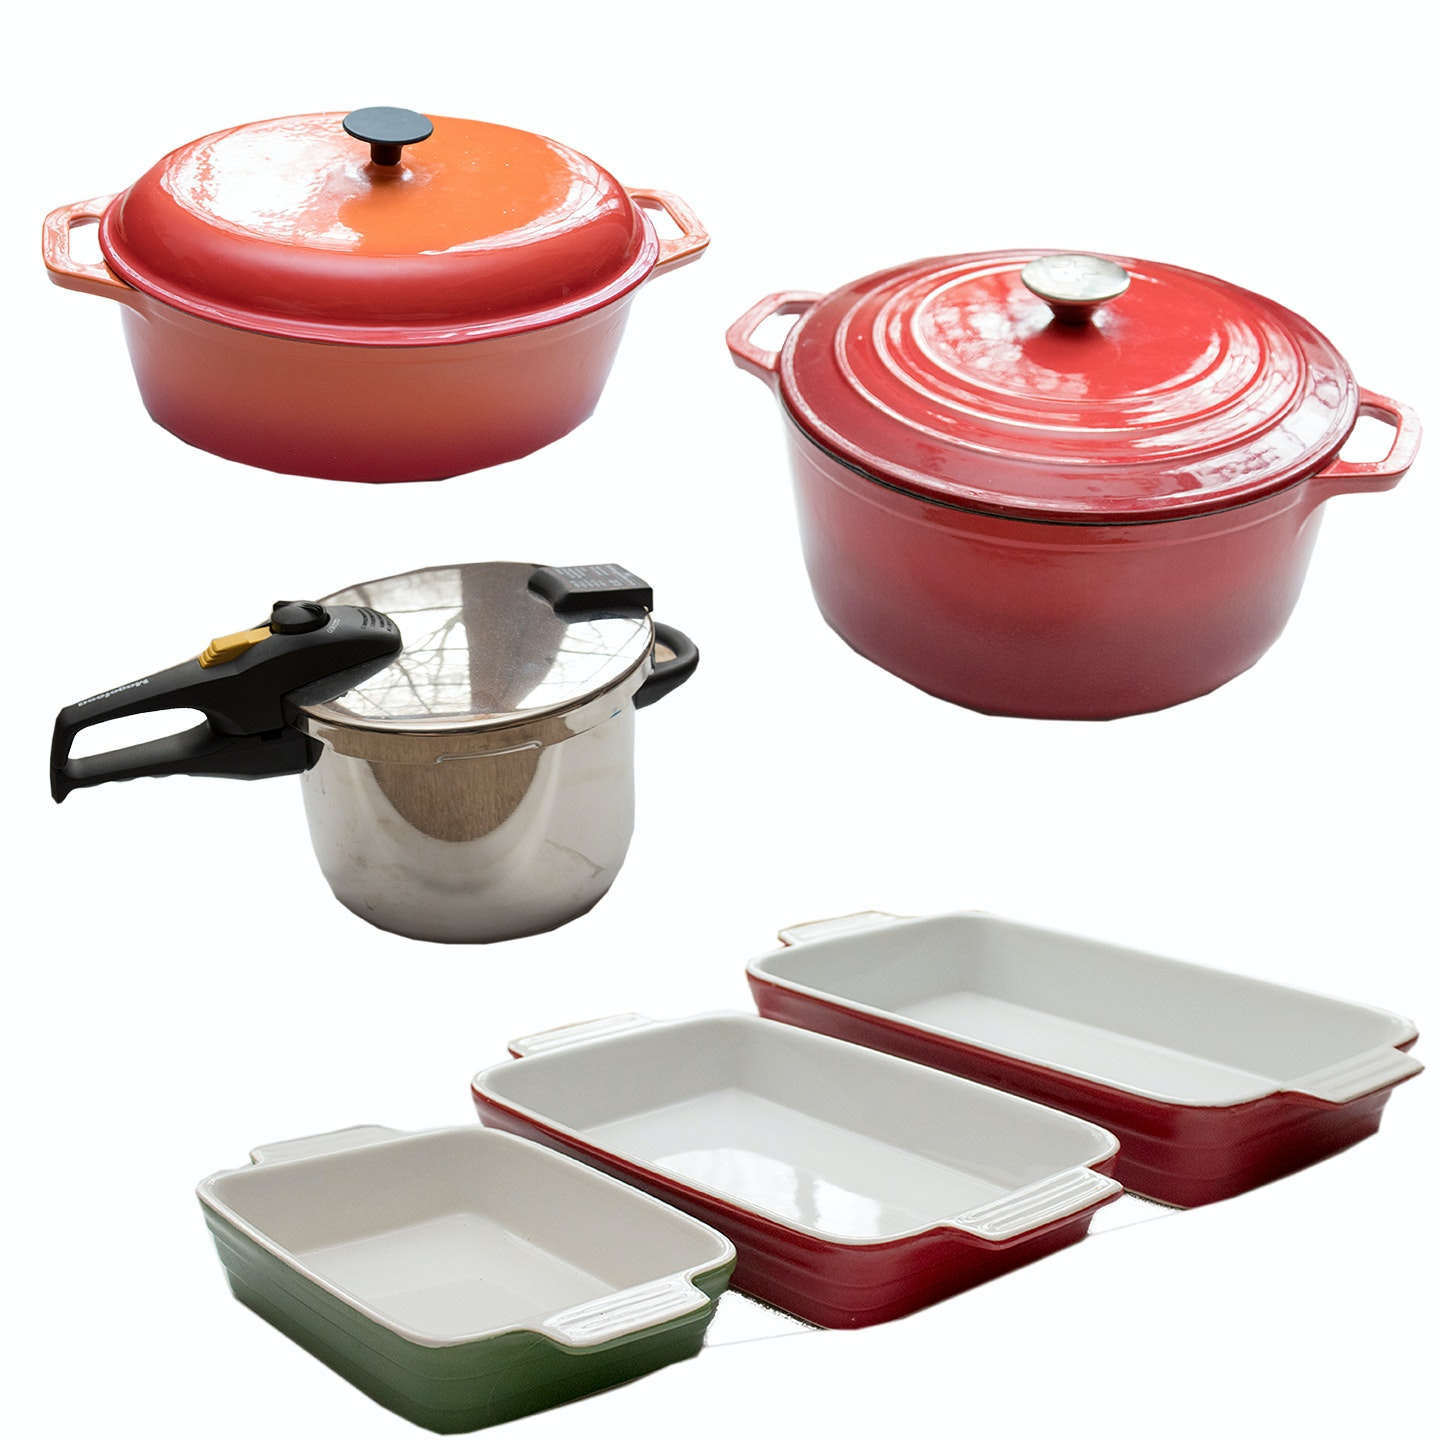 Enamel Cookware and Magefesa Pressure Cookers